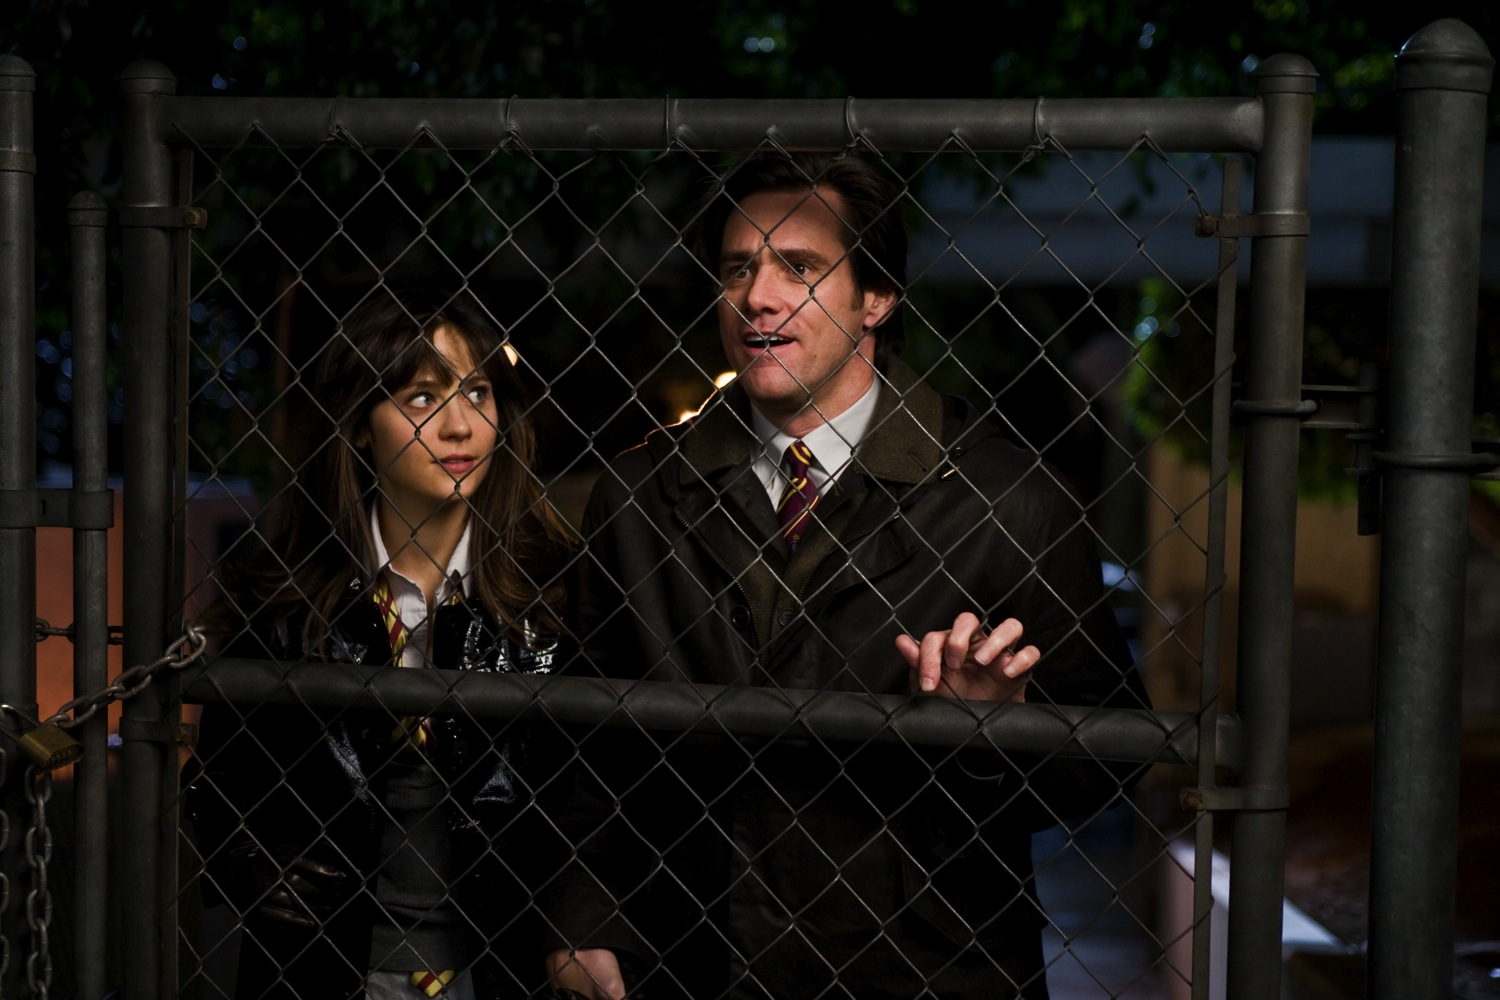 Zooey Deschanel & Jim Carrey get cosy in the dark.